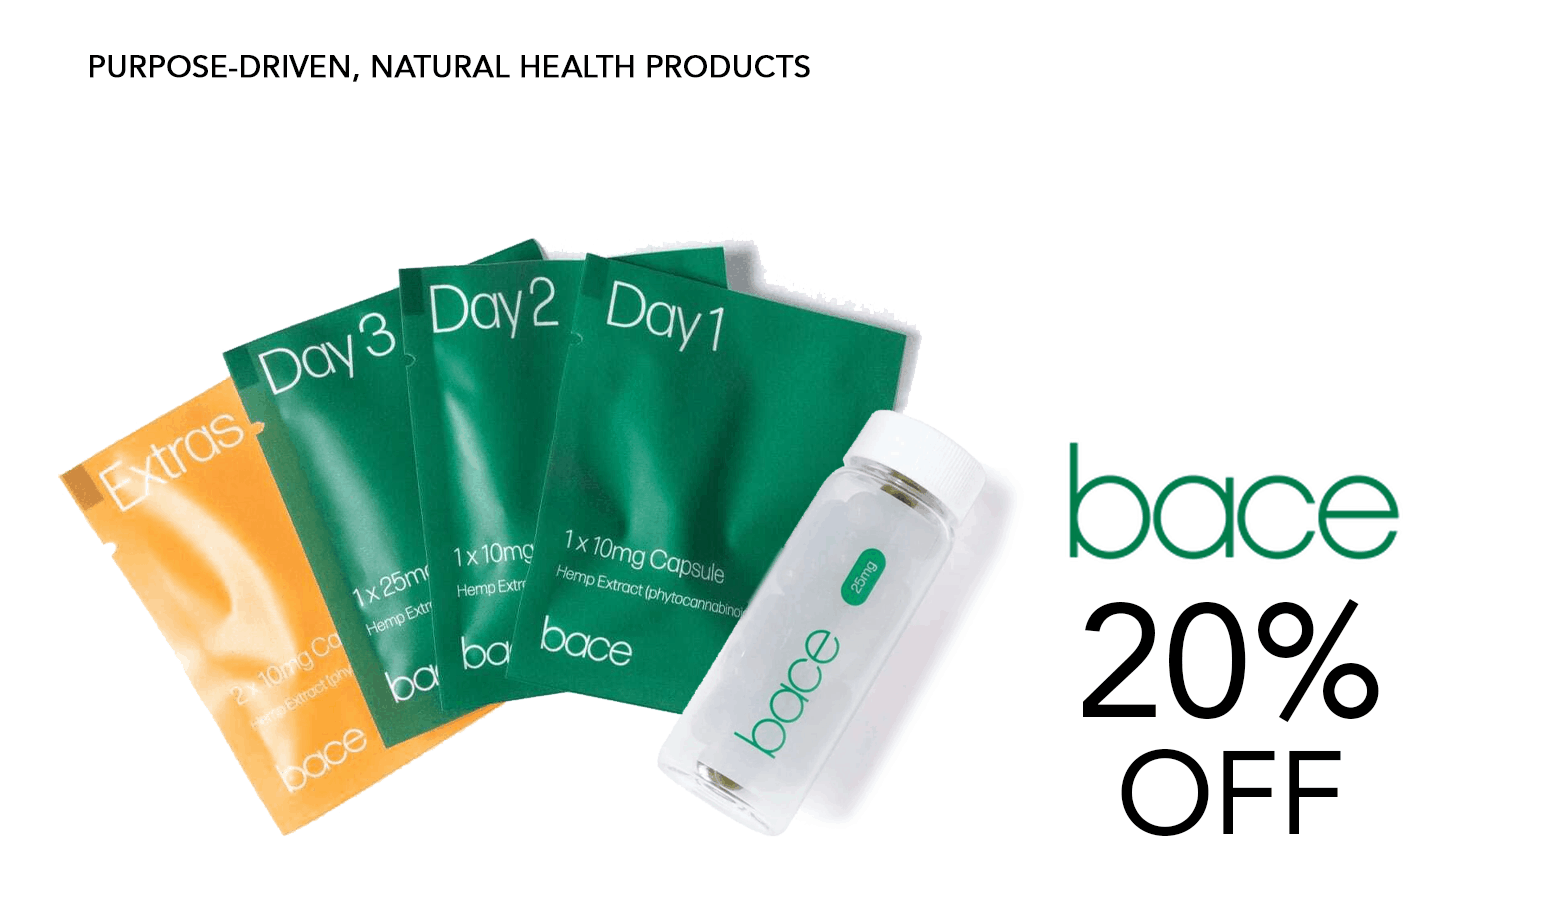 Bace Health CBD Coupon Code Offer Website